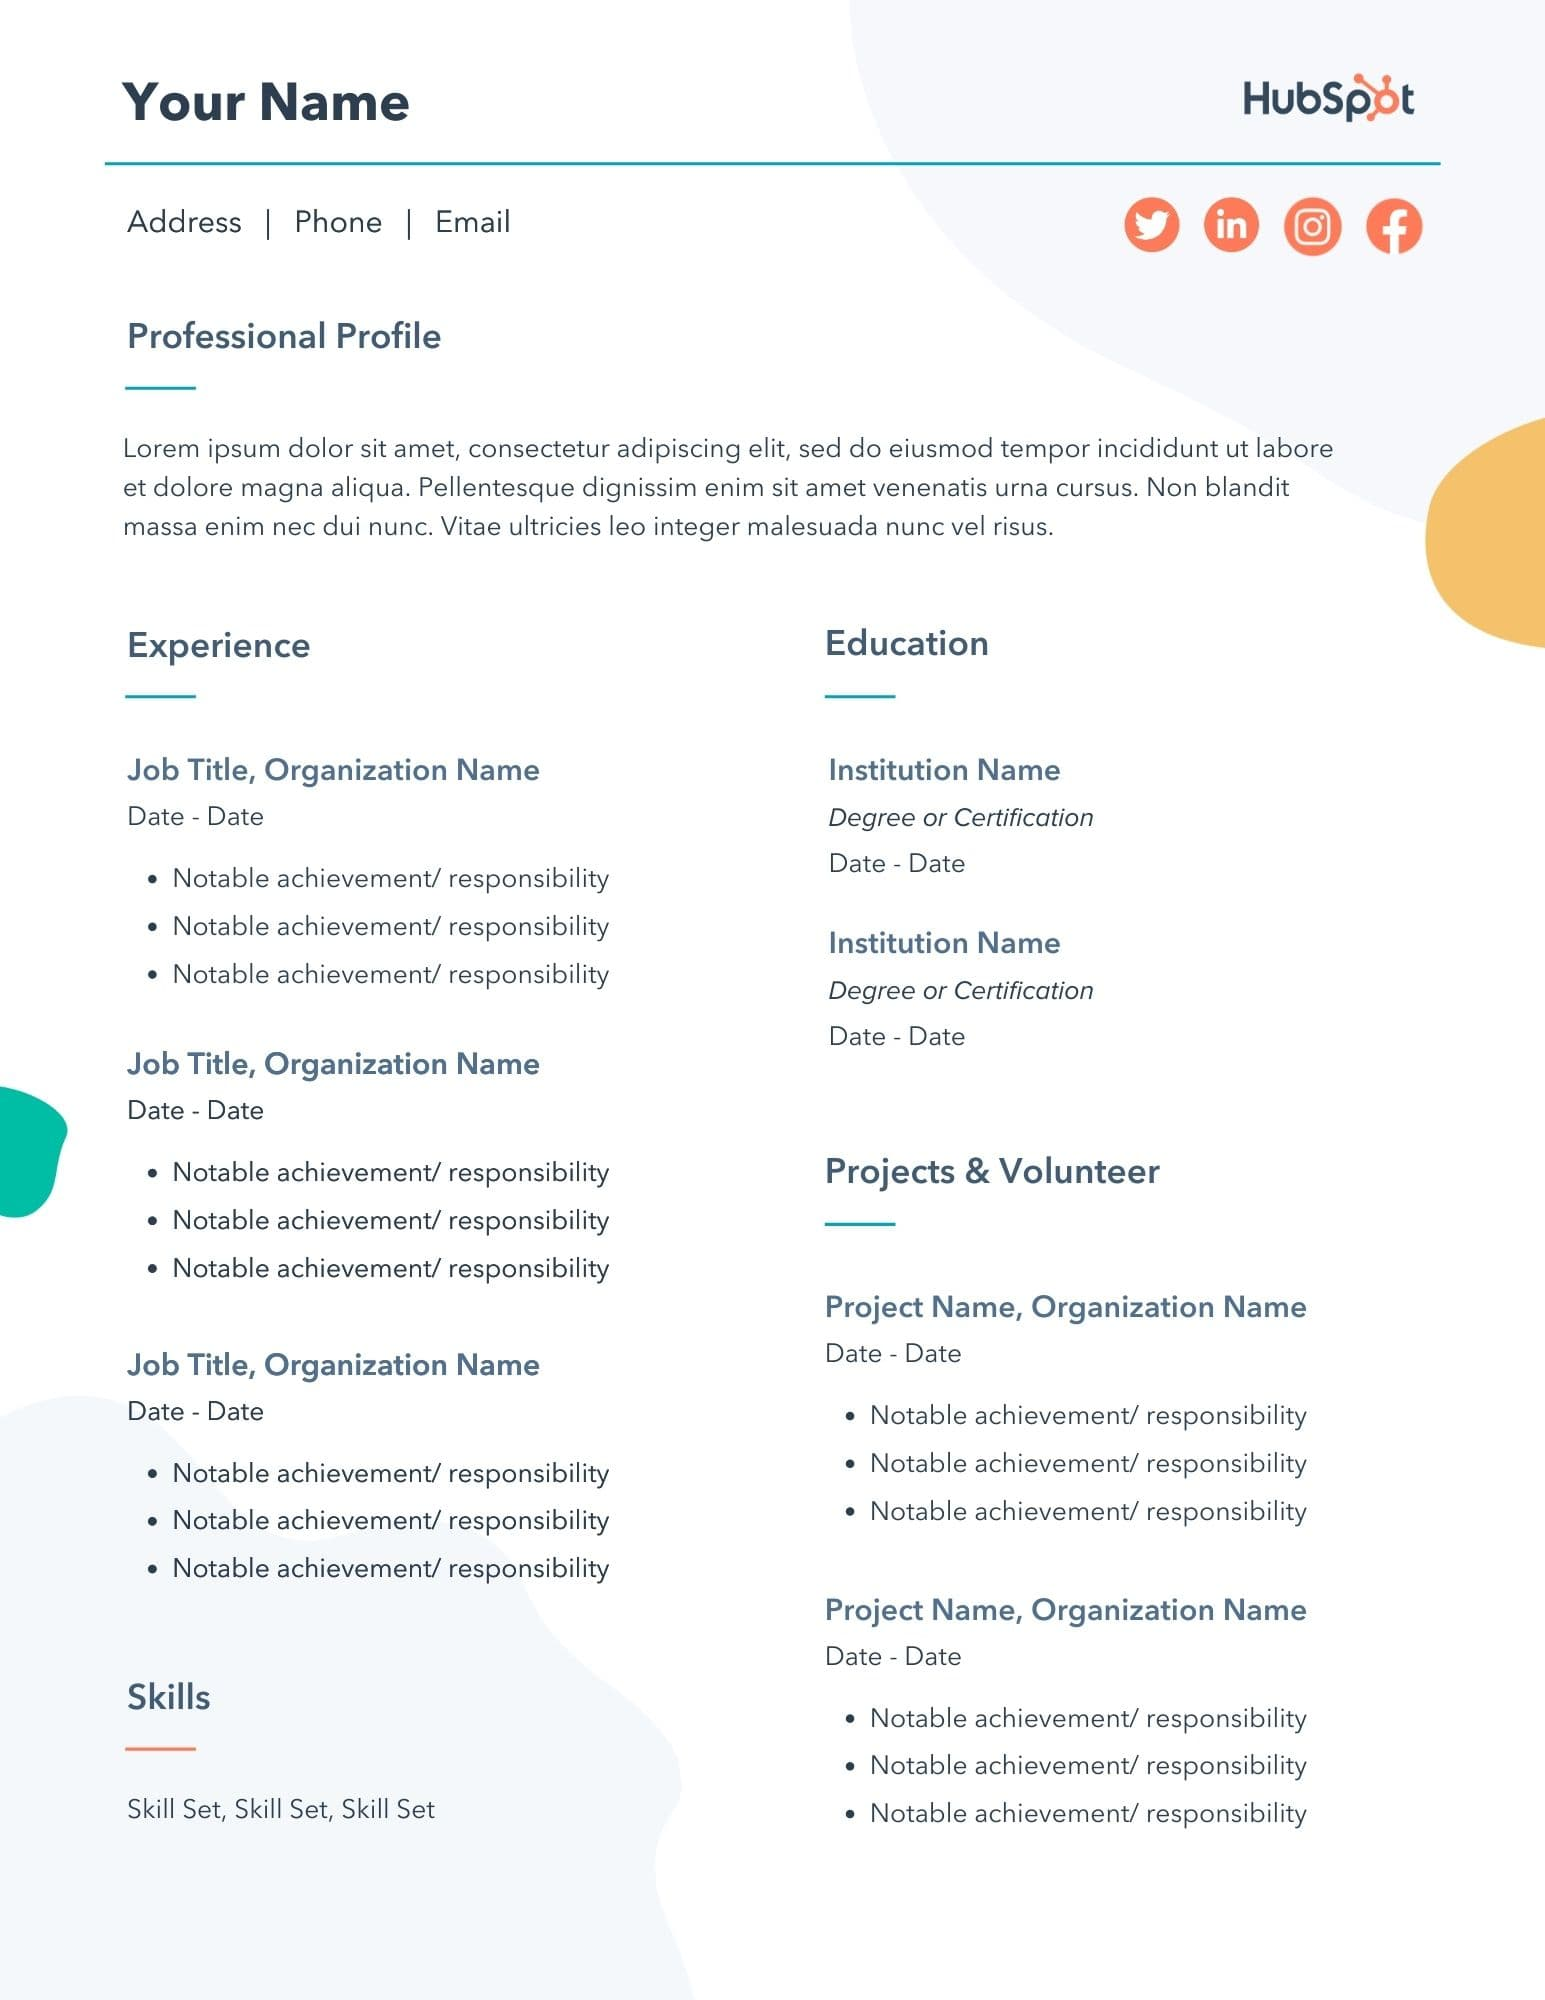 free resume templates for microsoft word to make your own template configuration Resume Free Online Resume Templates